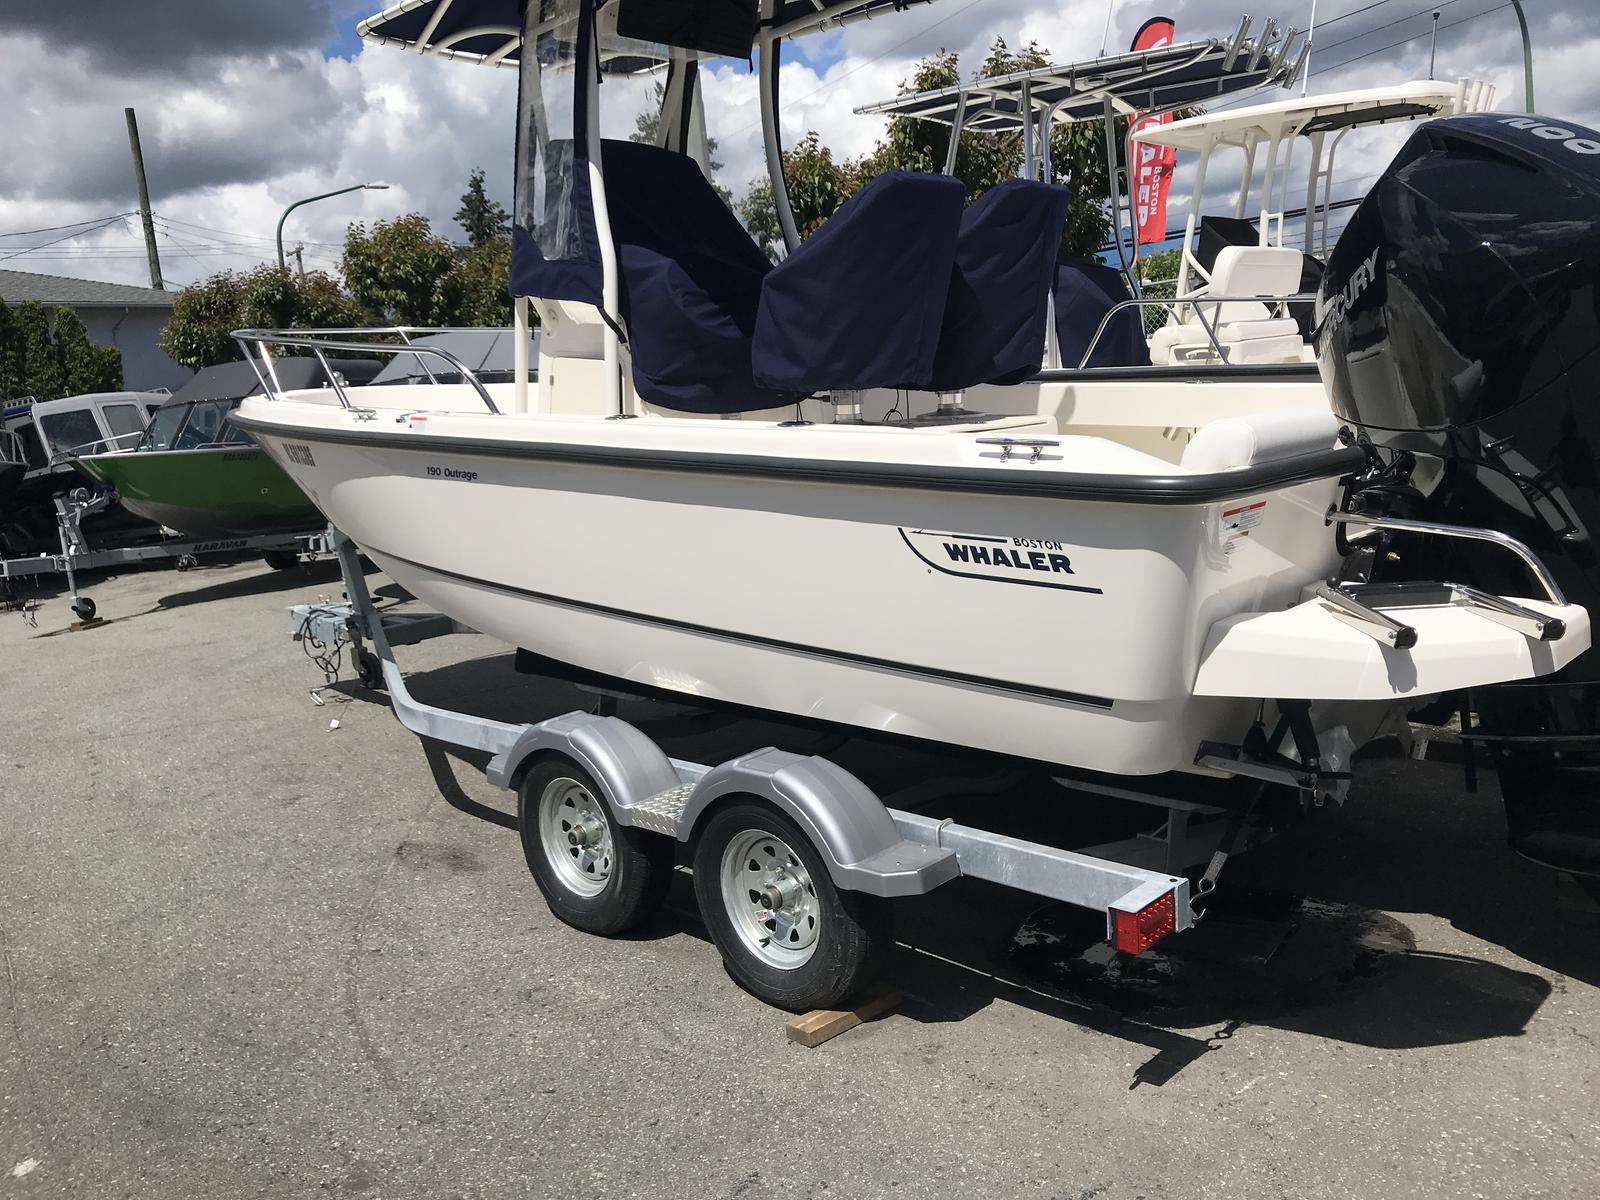 2019 Boston Whaler boat for sale, model of the boat is 190 Outrage & Image # 1 of 12